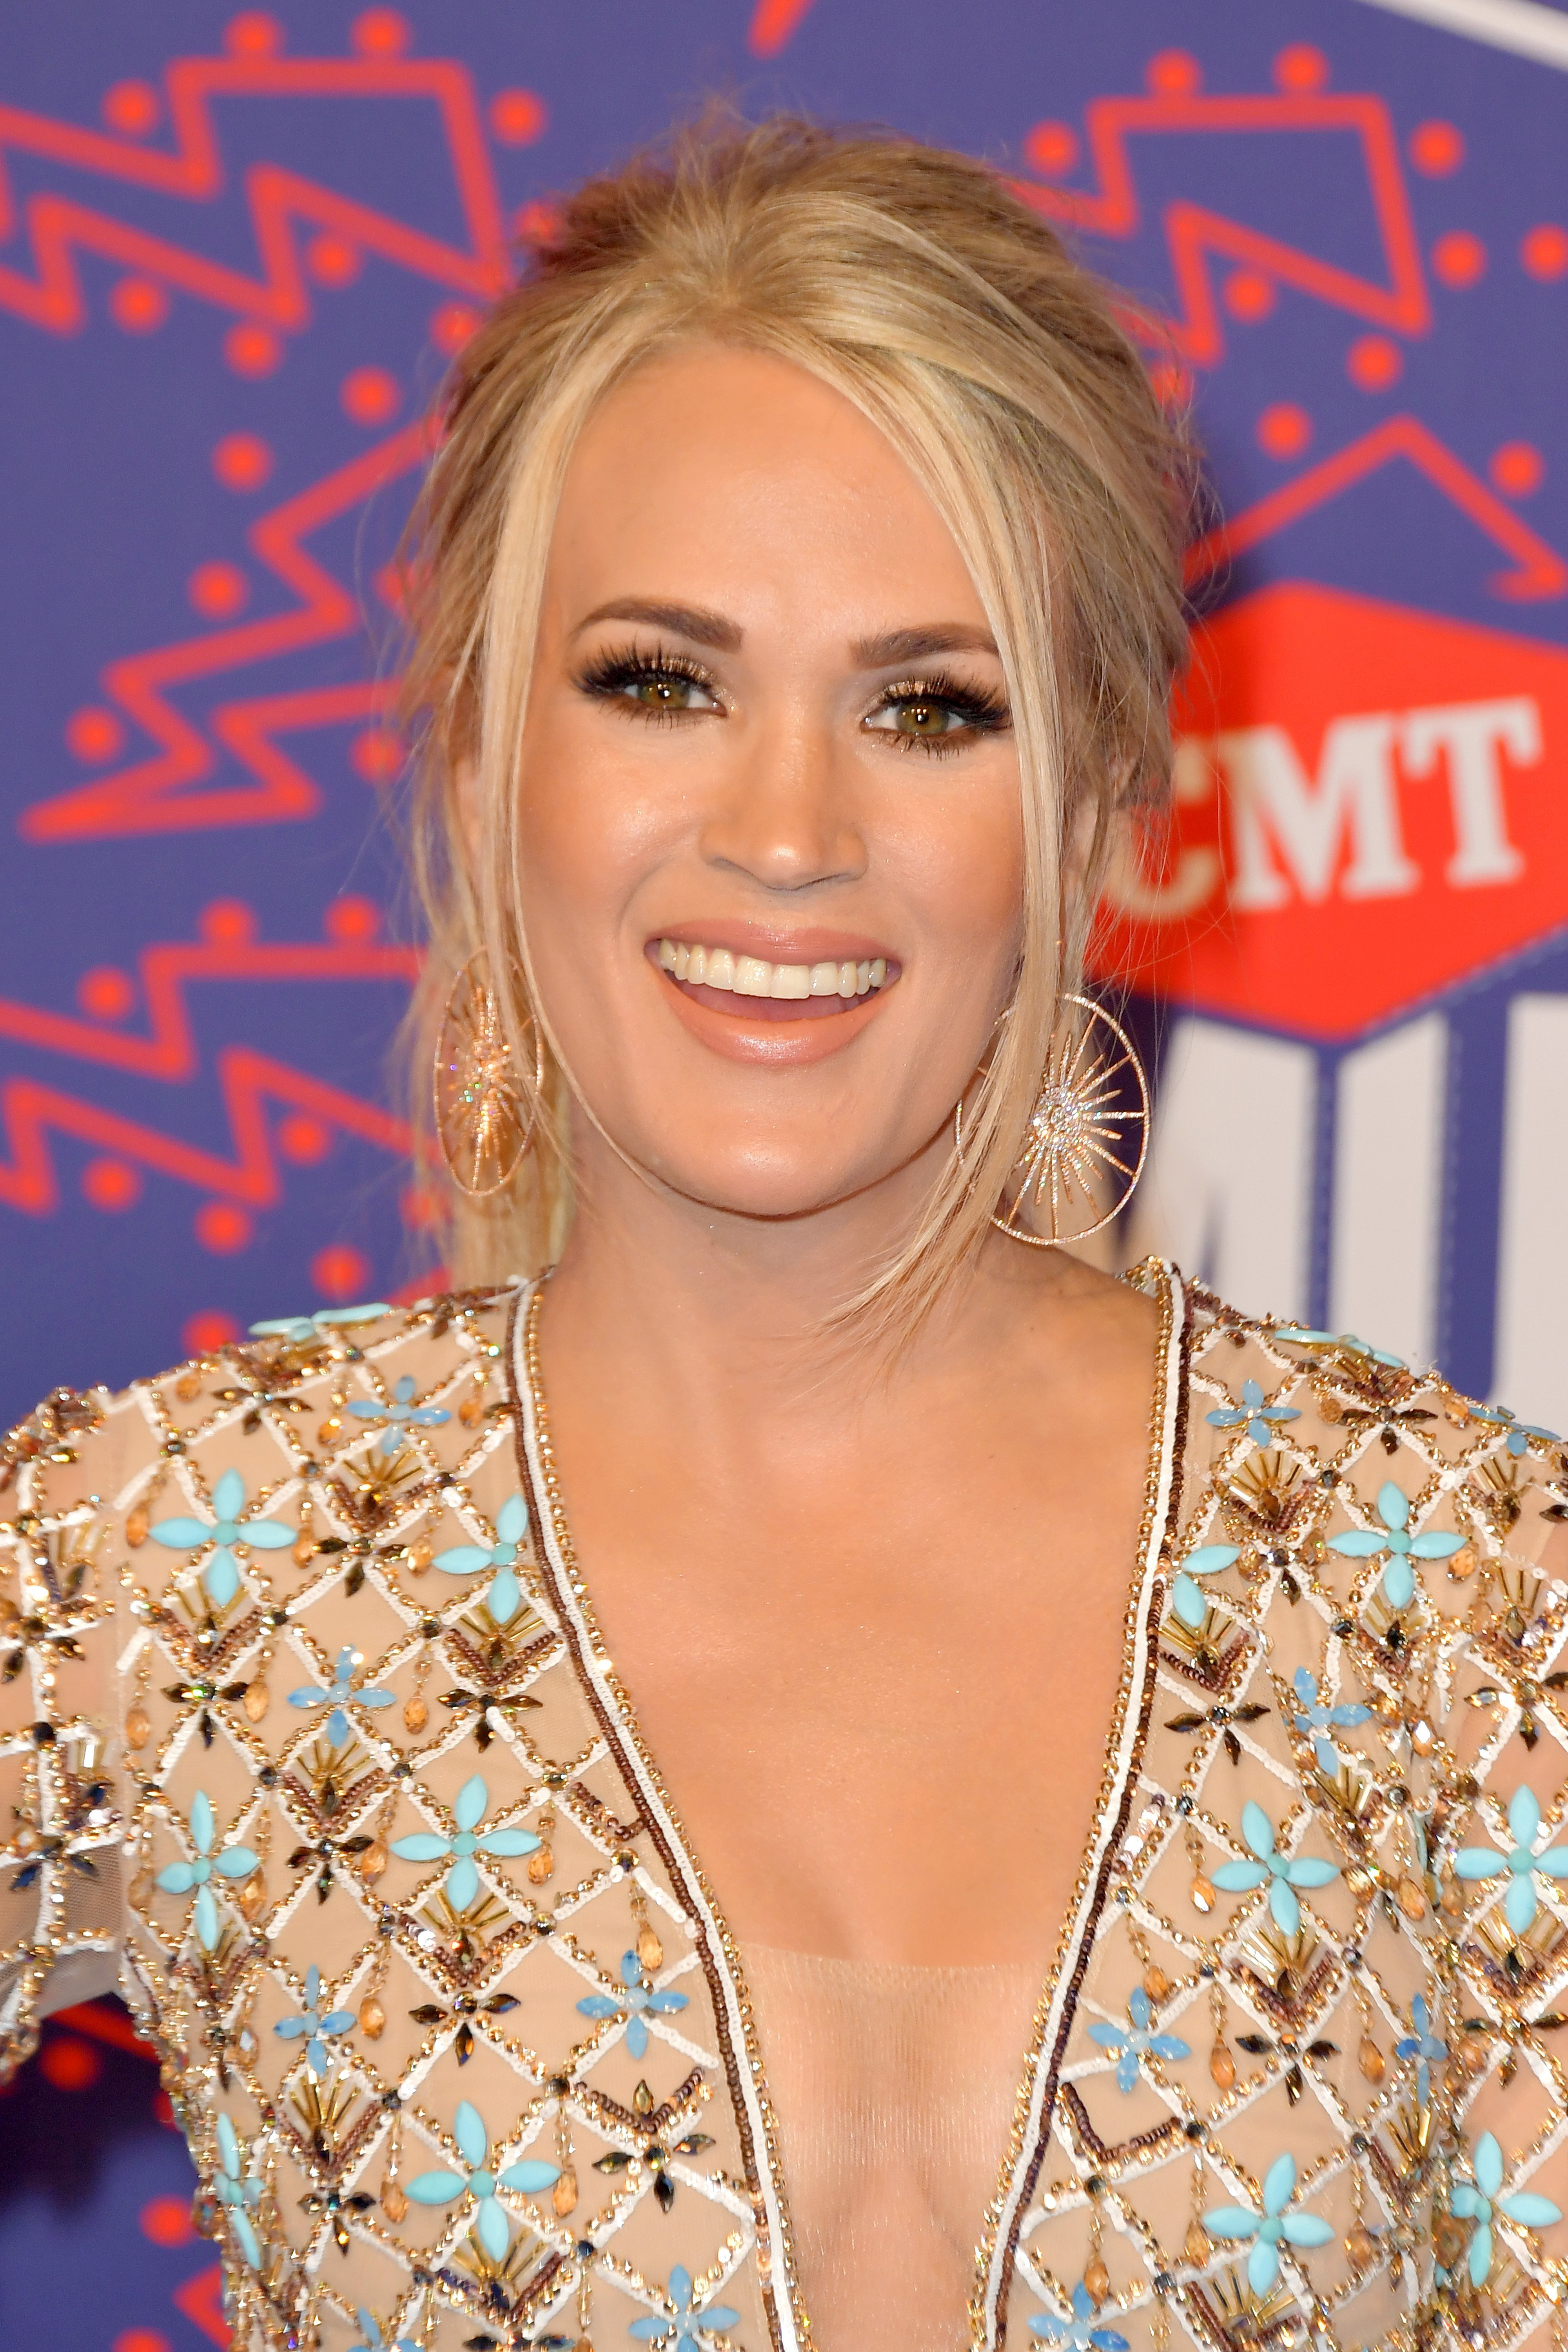 Carrie Underwood attends the 2019 CMT Music Awards in Nashville, Tennessee on June 5, 2019   Photo: Getty Images